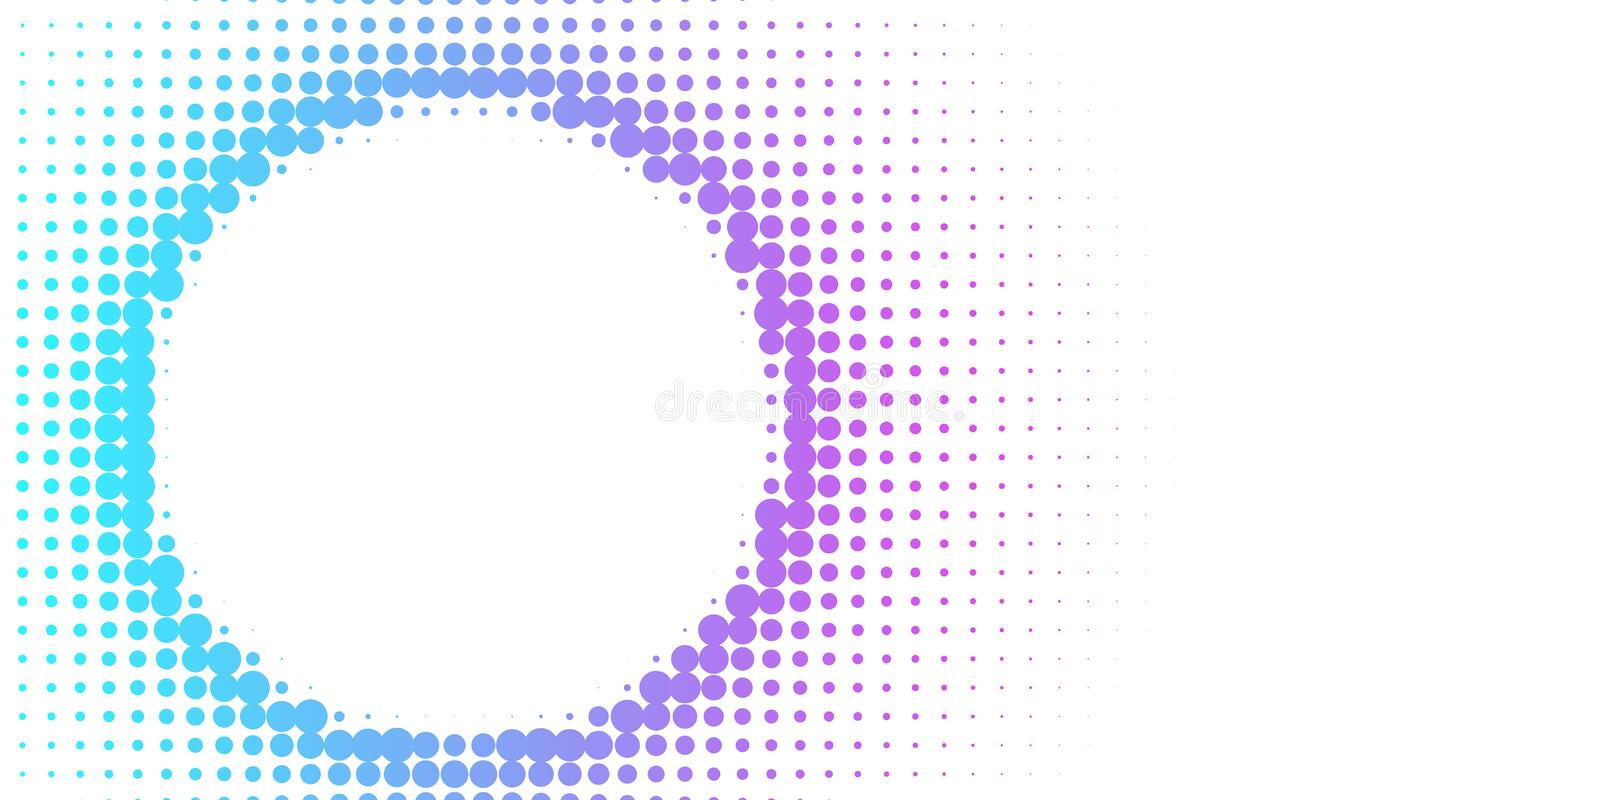 Gradient  futuristic pattern. Halftone colorful gradient background for design decoration. Abstract business bright grunge background. Minimal geometric royalty free illustration